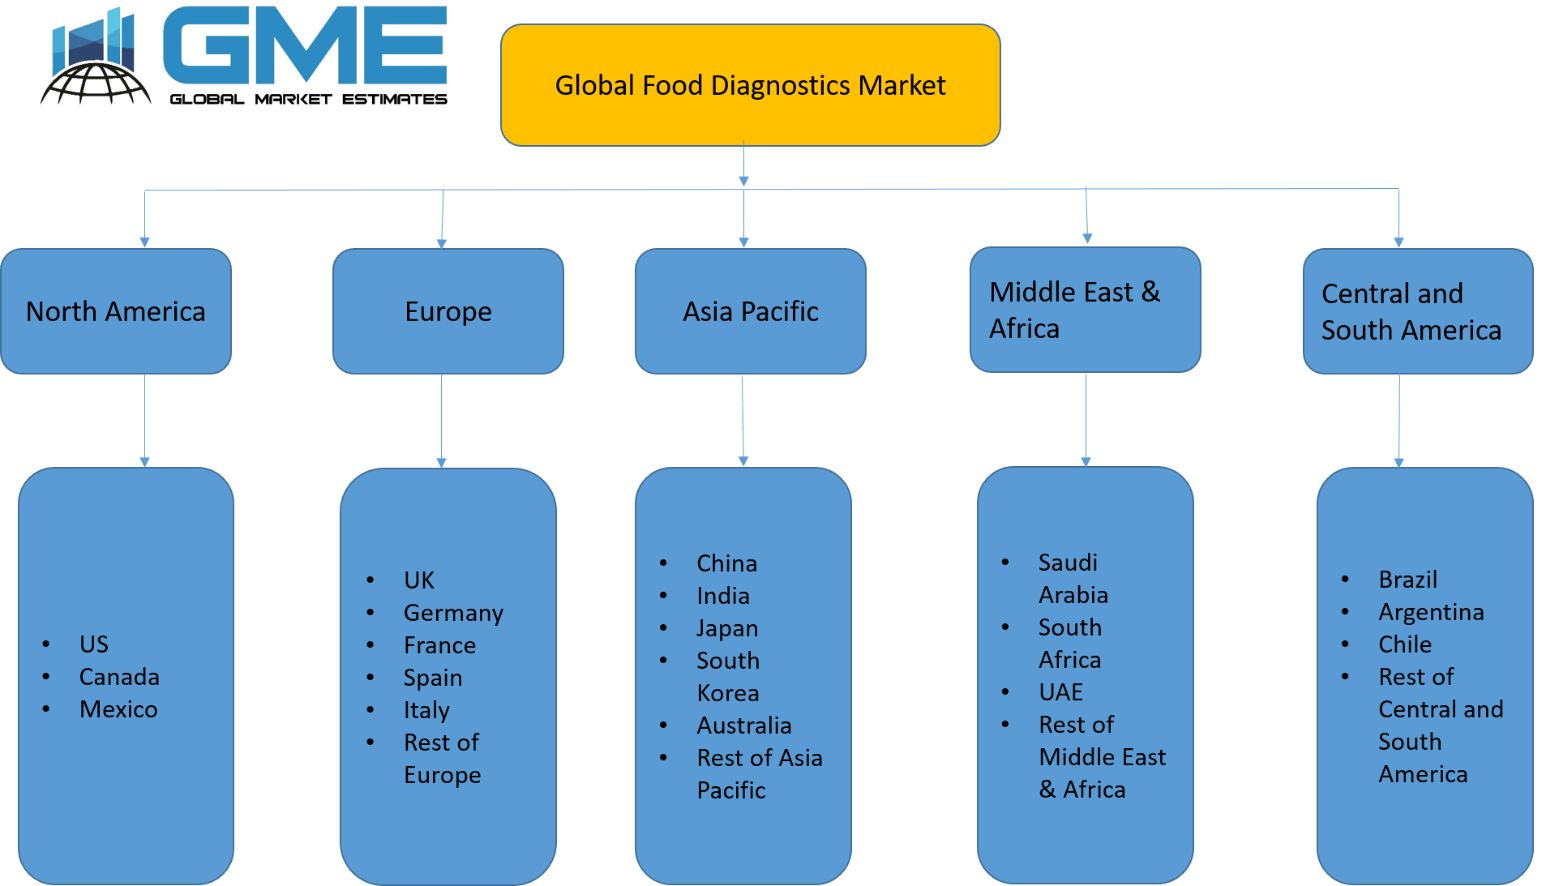 Global Food Diagnostics Market